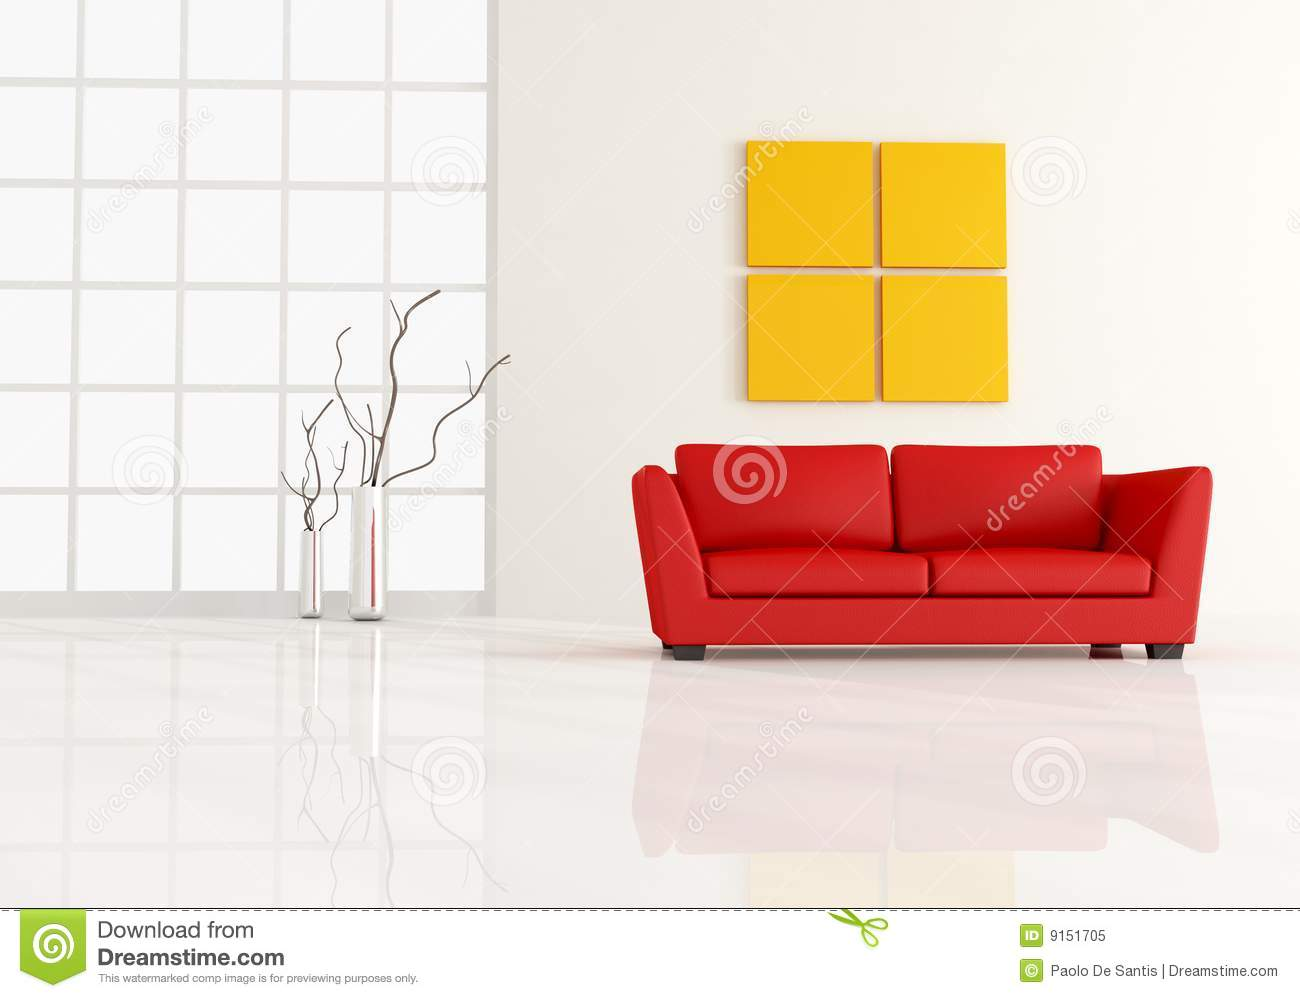 Minimal living room stock illustration. Illustration of apartment ...